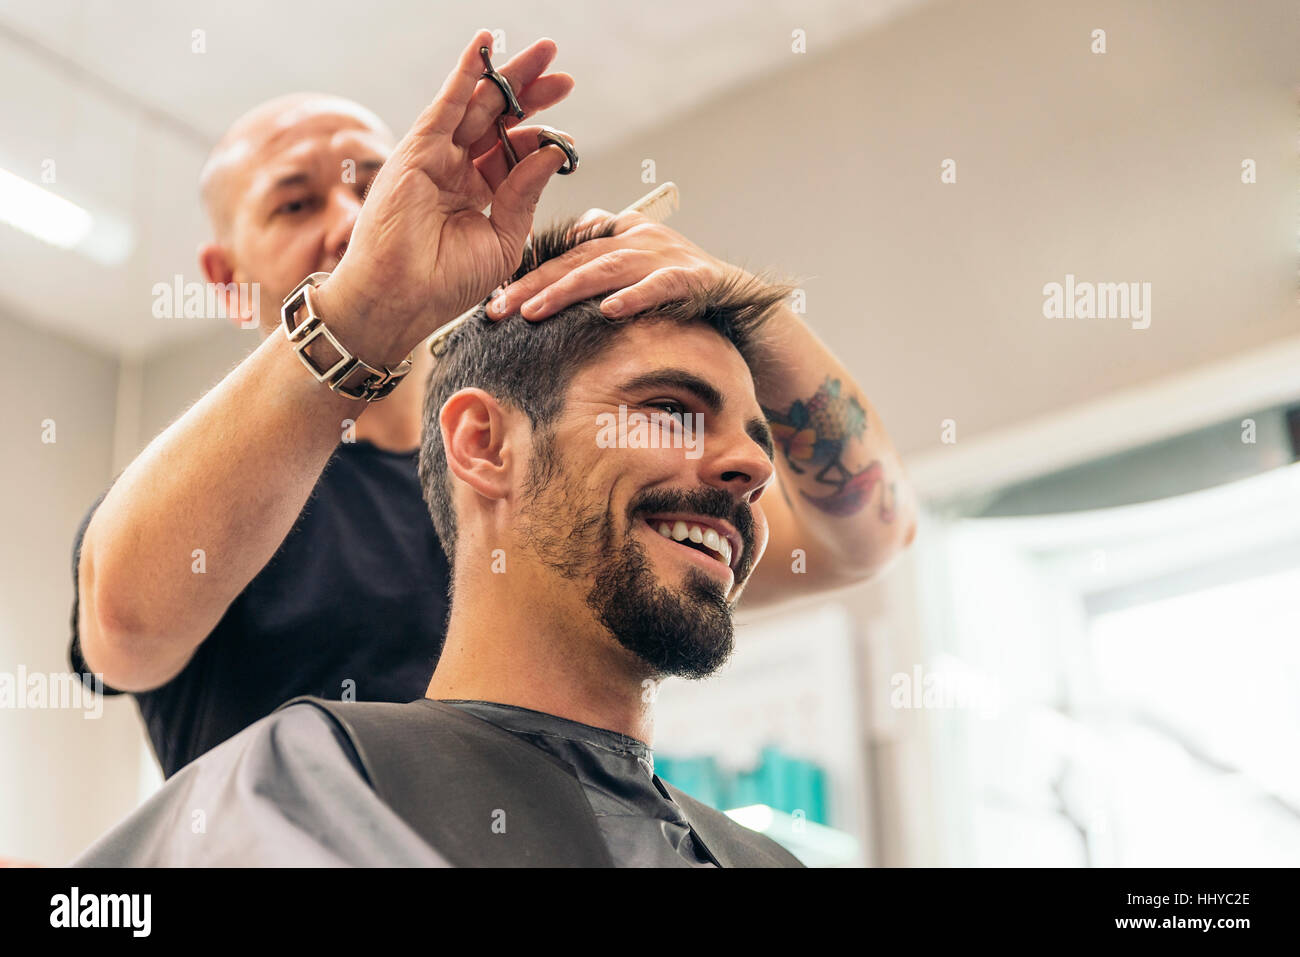 Hairstylist making men's haircut to an attractive man in the beauty salon. - Stock Image